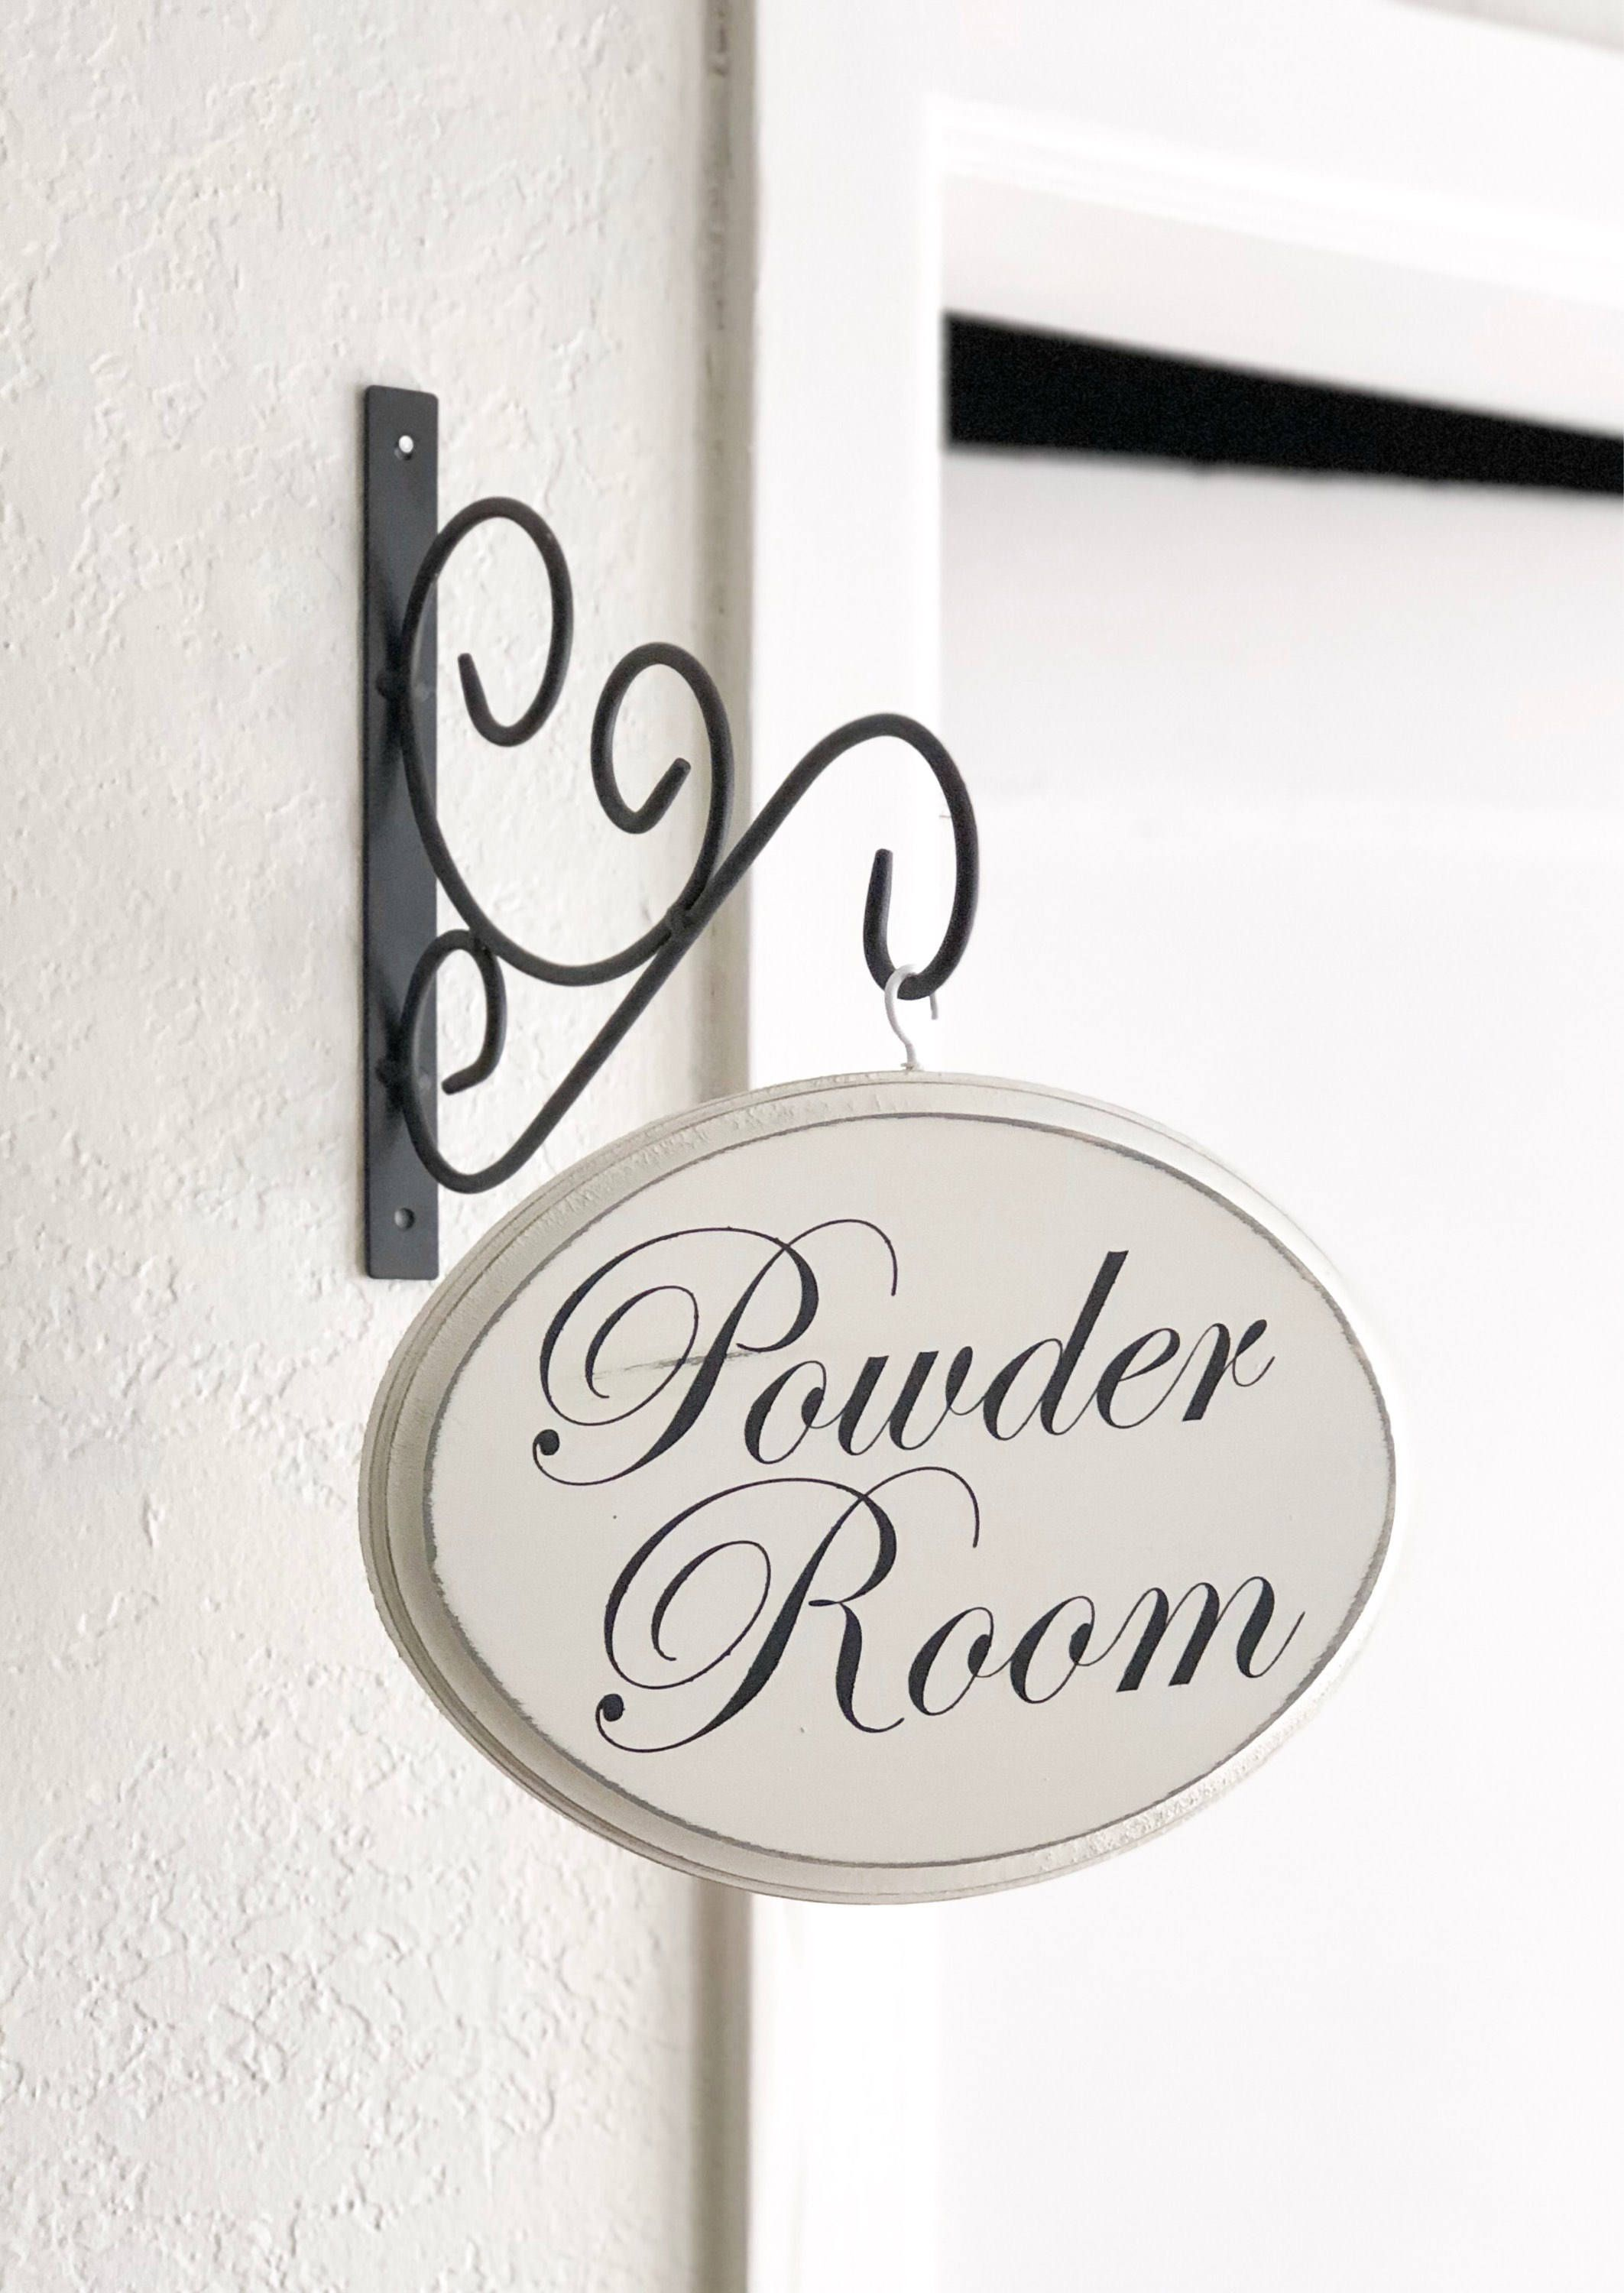 Powder room sign hanging powder room sign restroom sign bathroom wall decor bathroom signs christmas gift gift for her by thegreendoorhomedeco